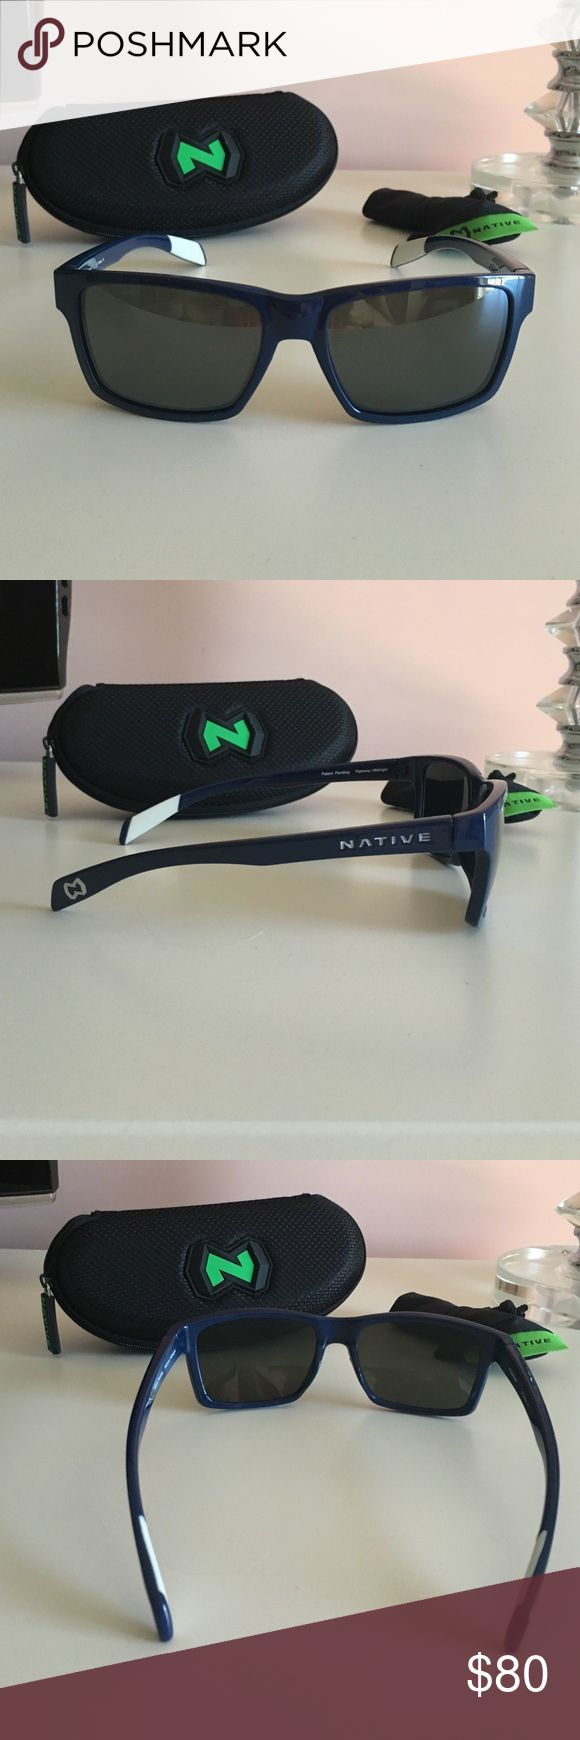 Brand New Navy Blue Native Eyewear Sunglasses Brand New Navy Blue Native Eyewear Sunglasses retail for over $100. native eyewear Accessories Glasses